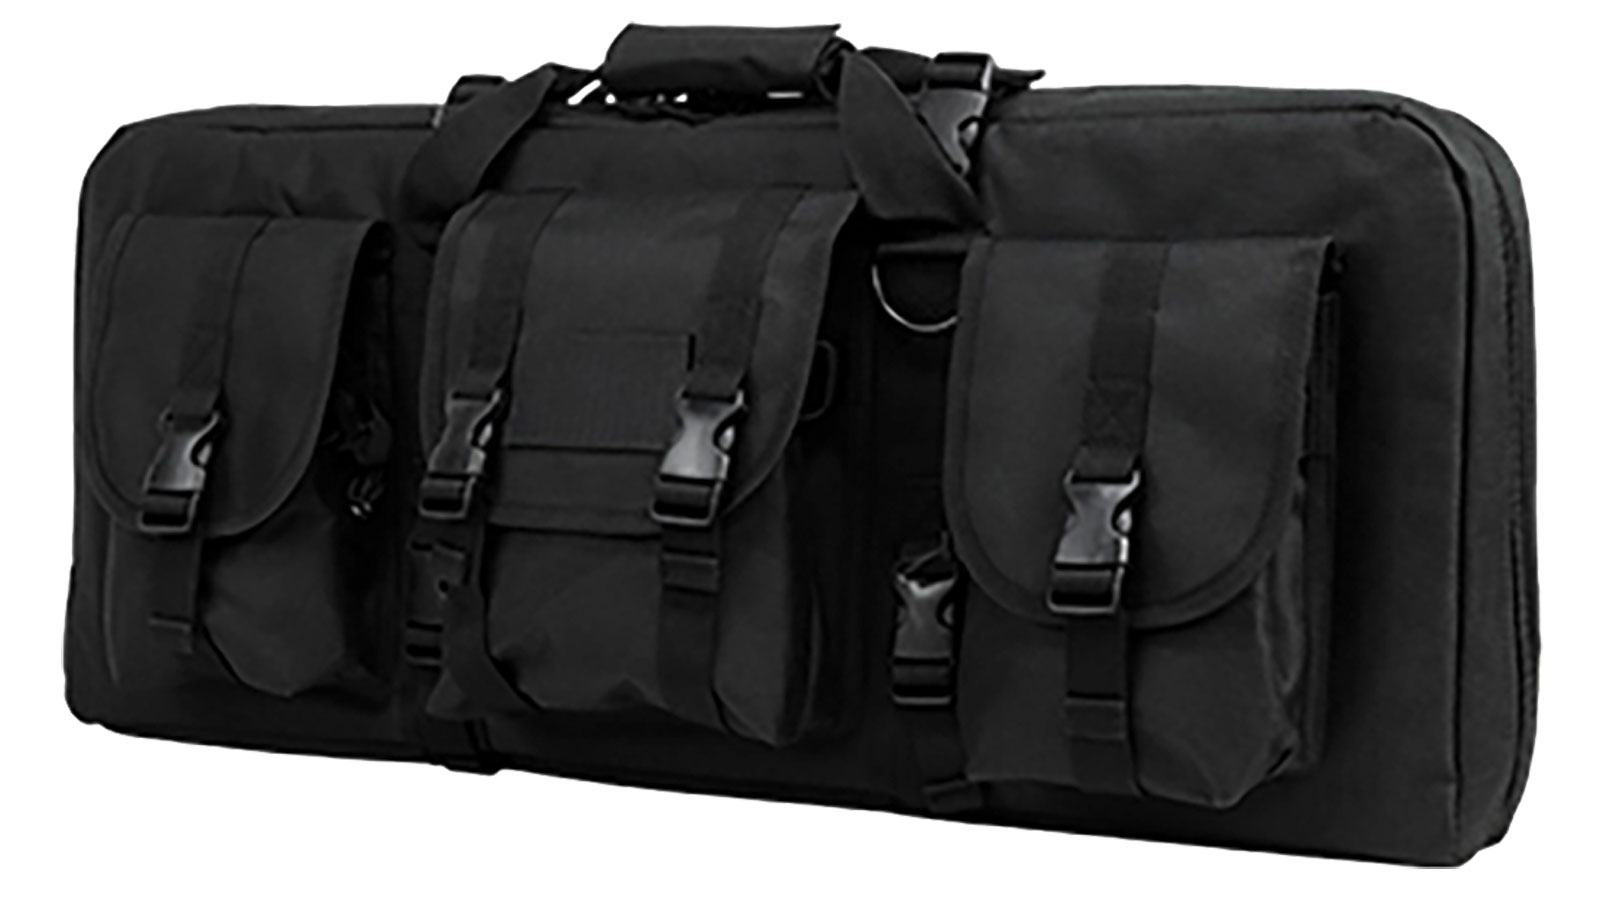 NC Star AR15 and AK Deluxe Carbine Pistol Case Black